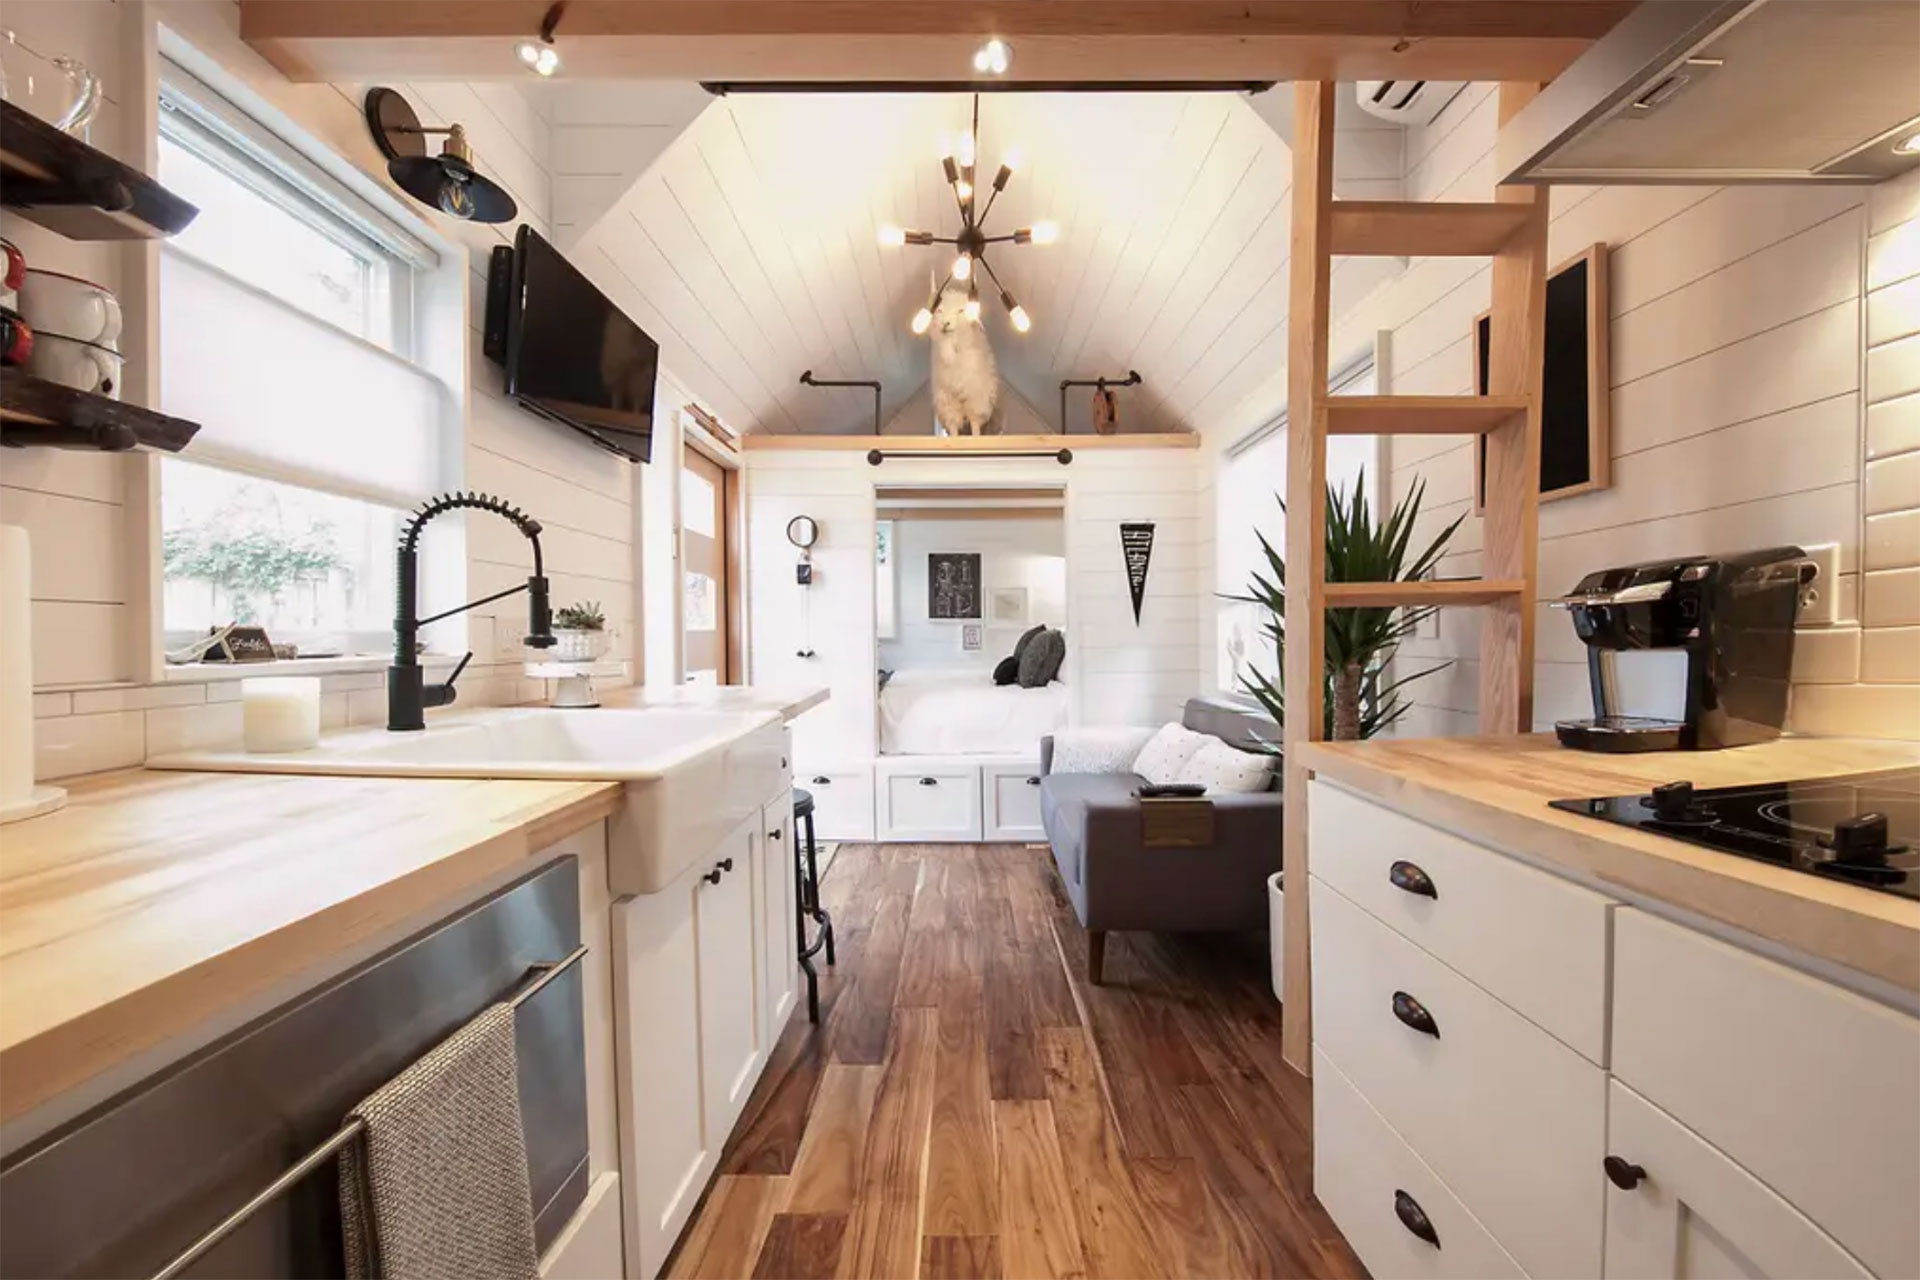 Tiny House on Airbnb; Courtesy of Airbnb